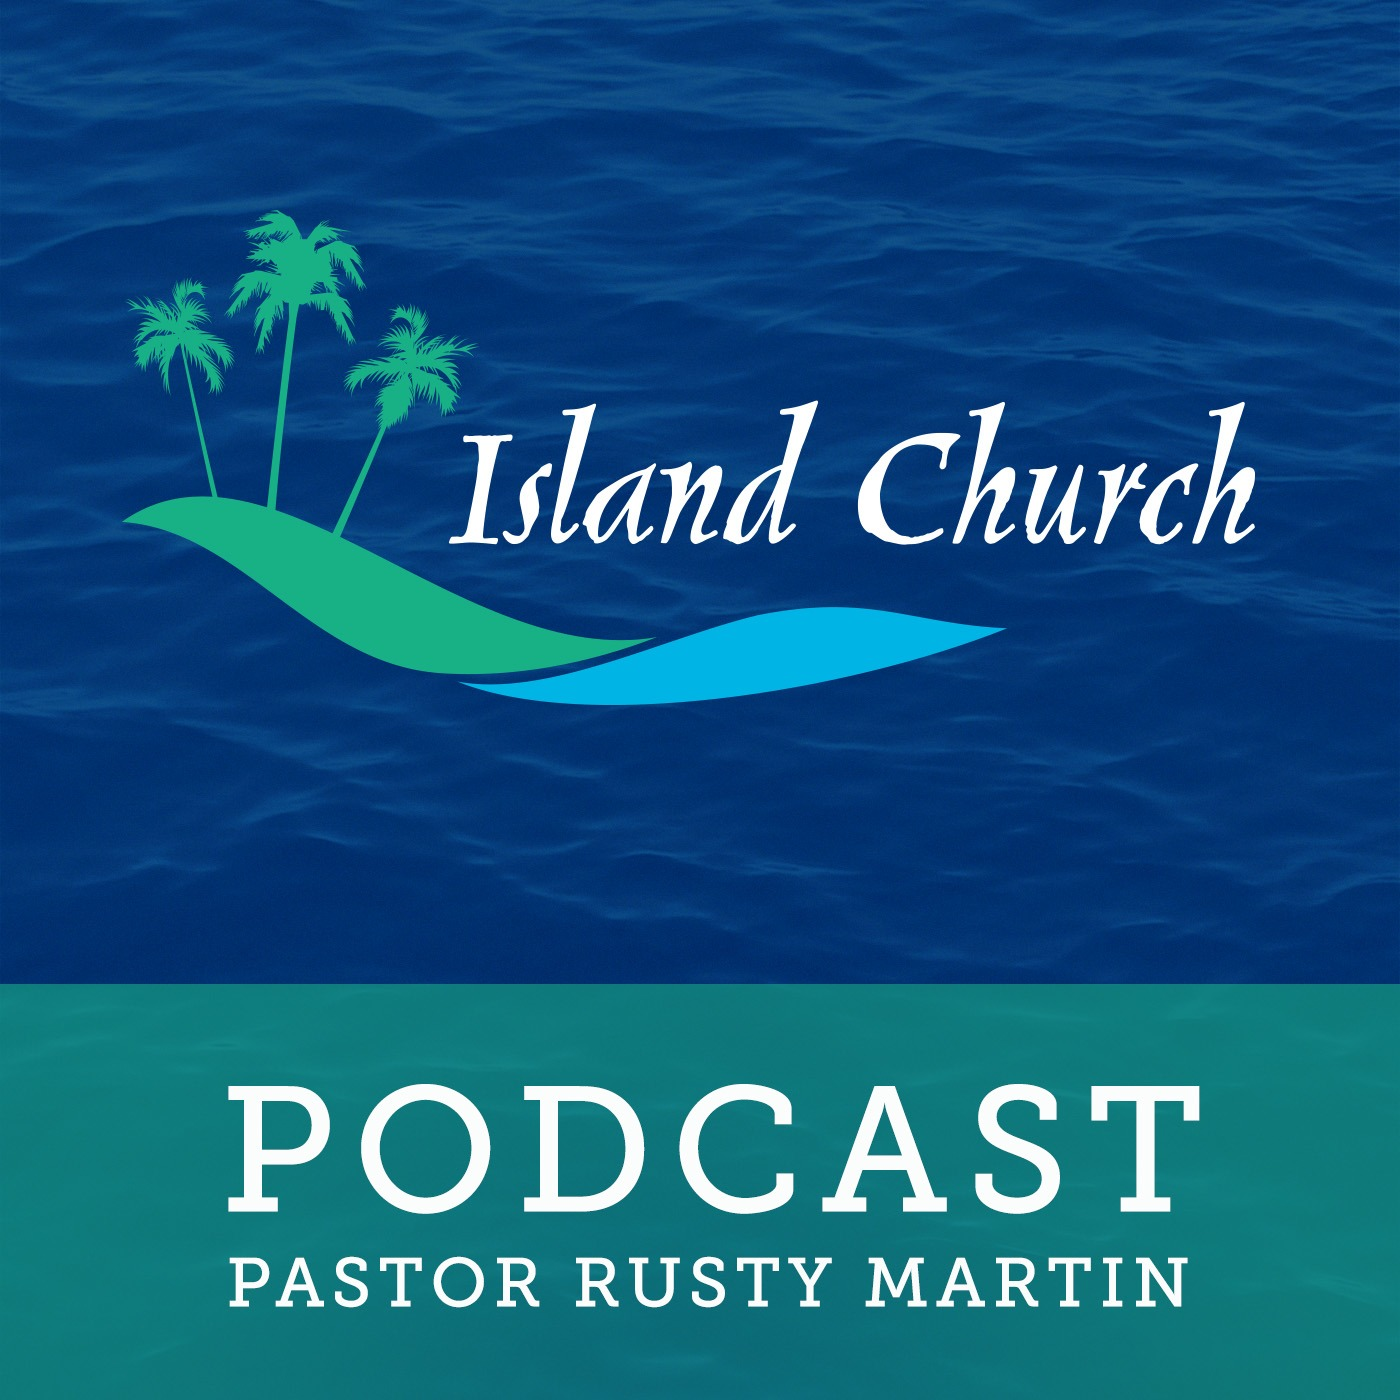 Island Church Podcast Galveston, TX